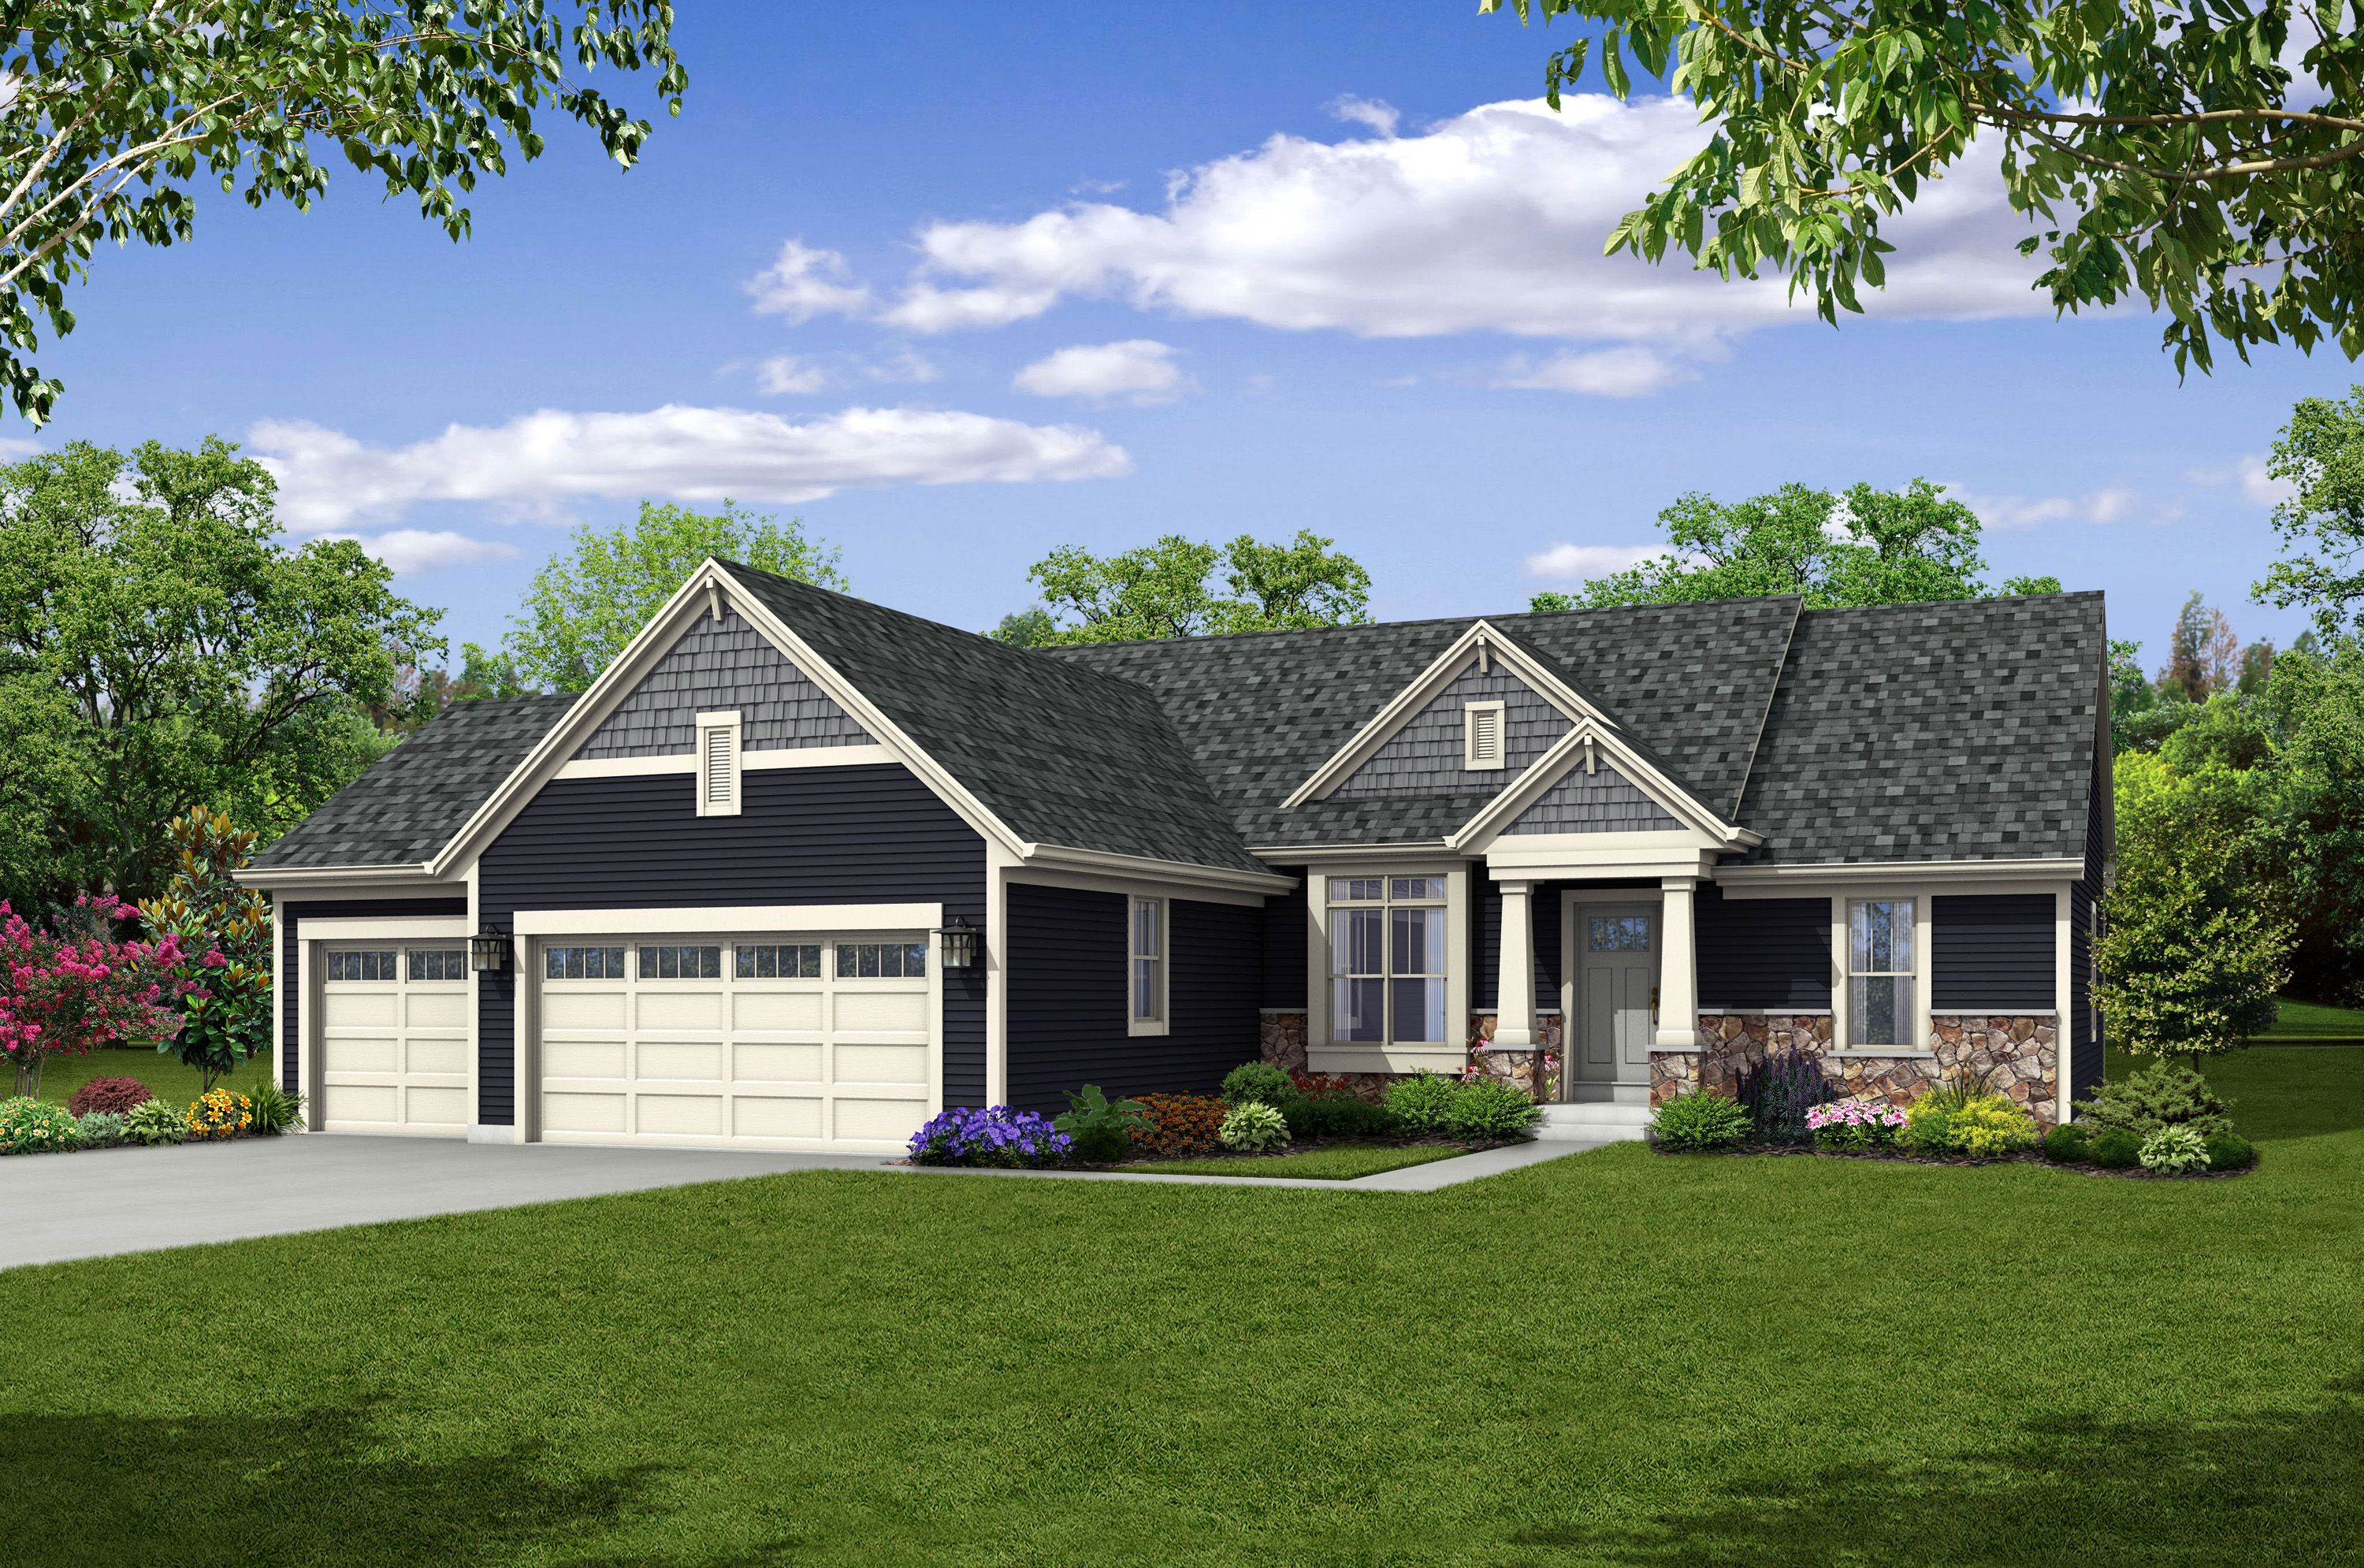 Single Family for Sale at The Independence, Plan 1818 634 Westlawn Avenue Mukwonago, Wisconsin 53149 United States